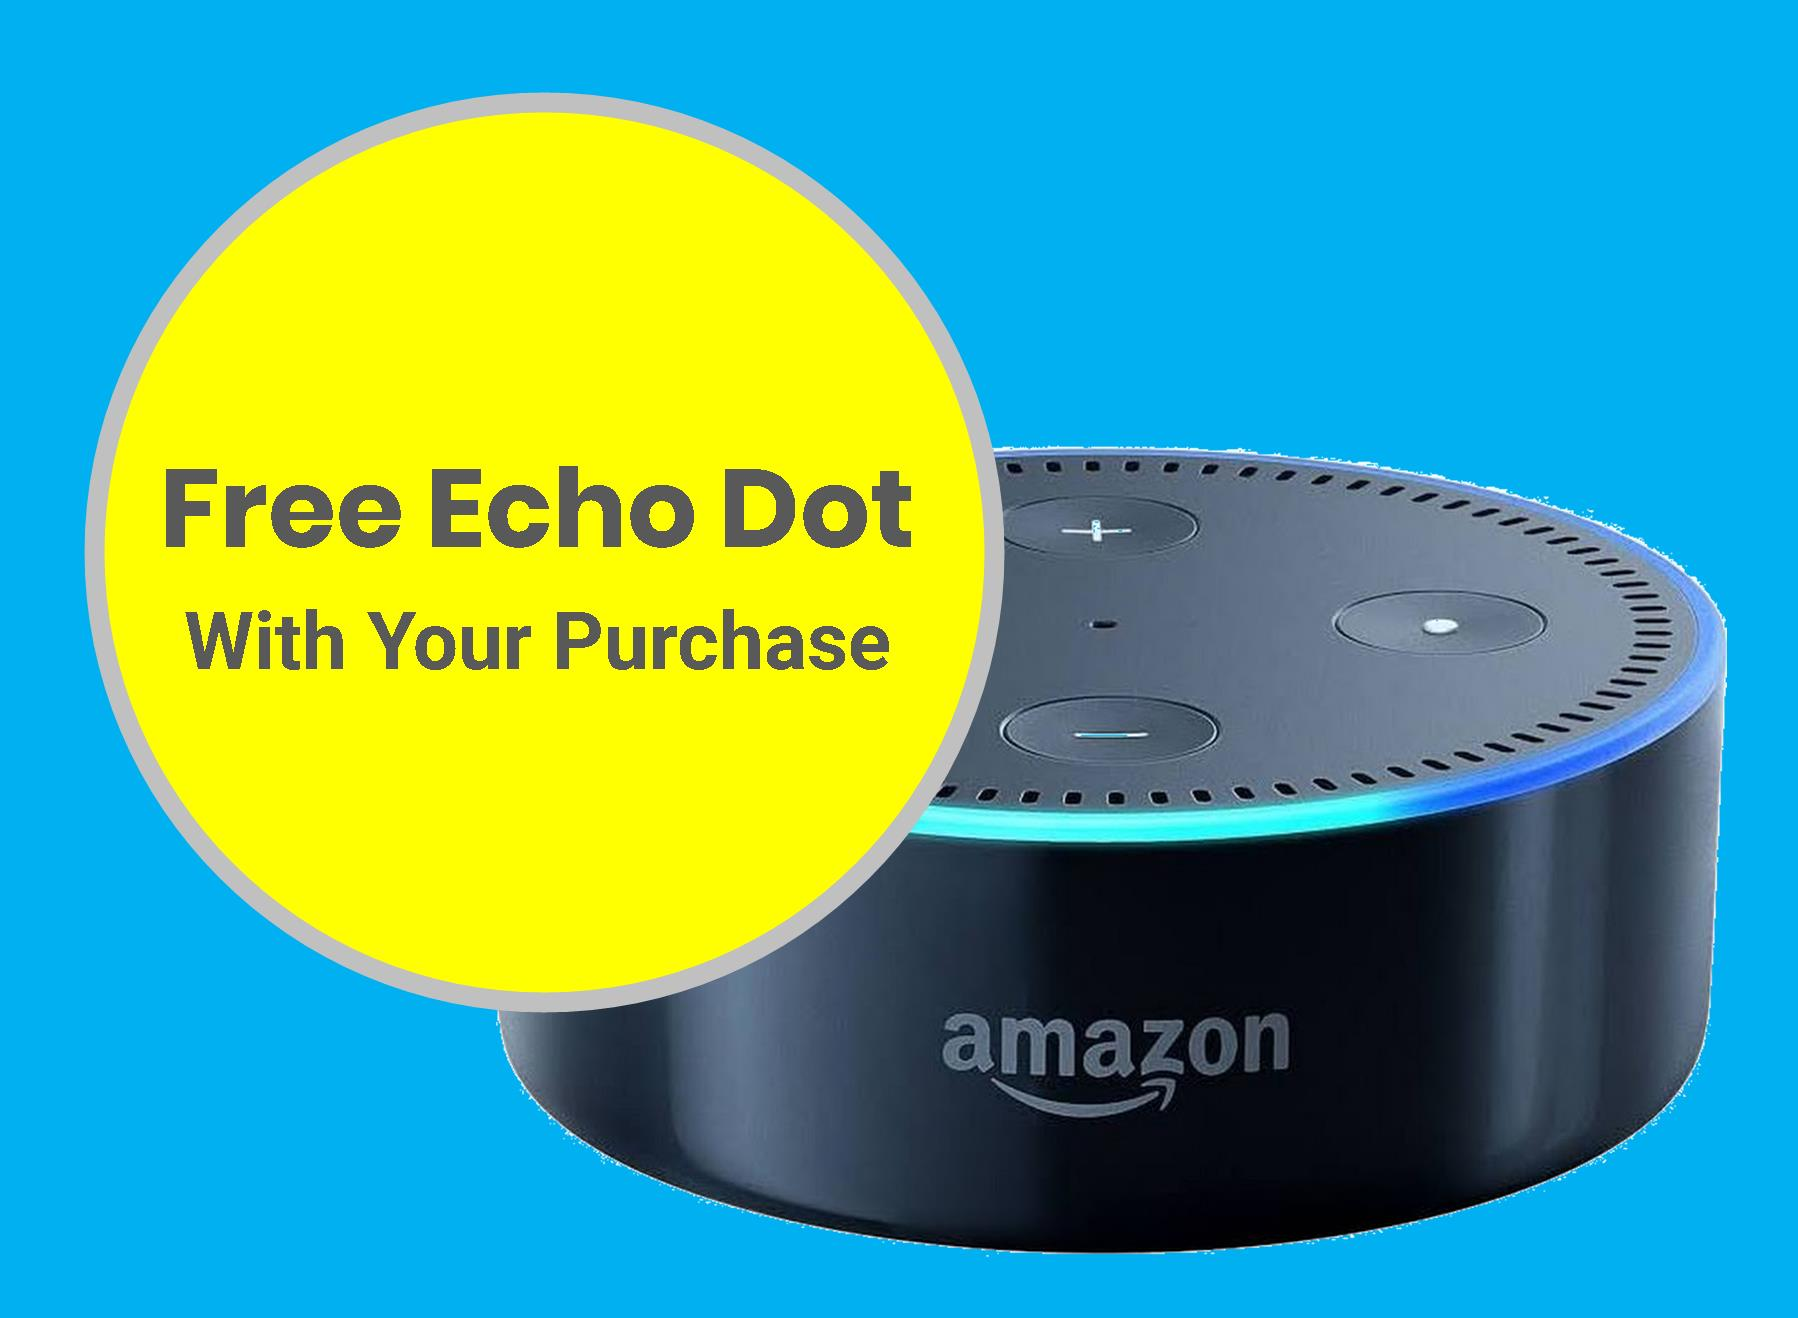 Free Amazon Echo Dot News